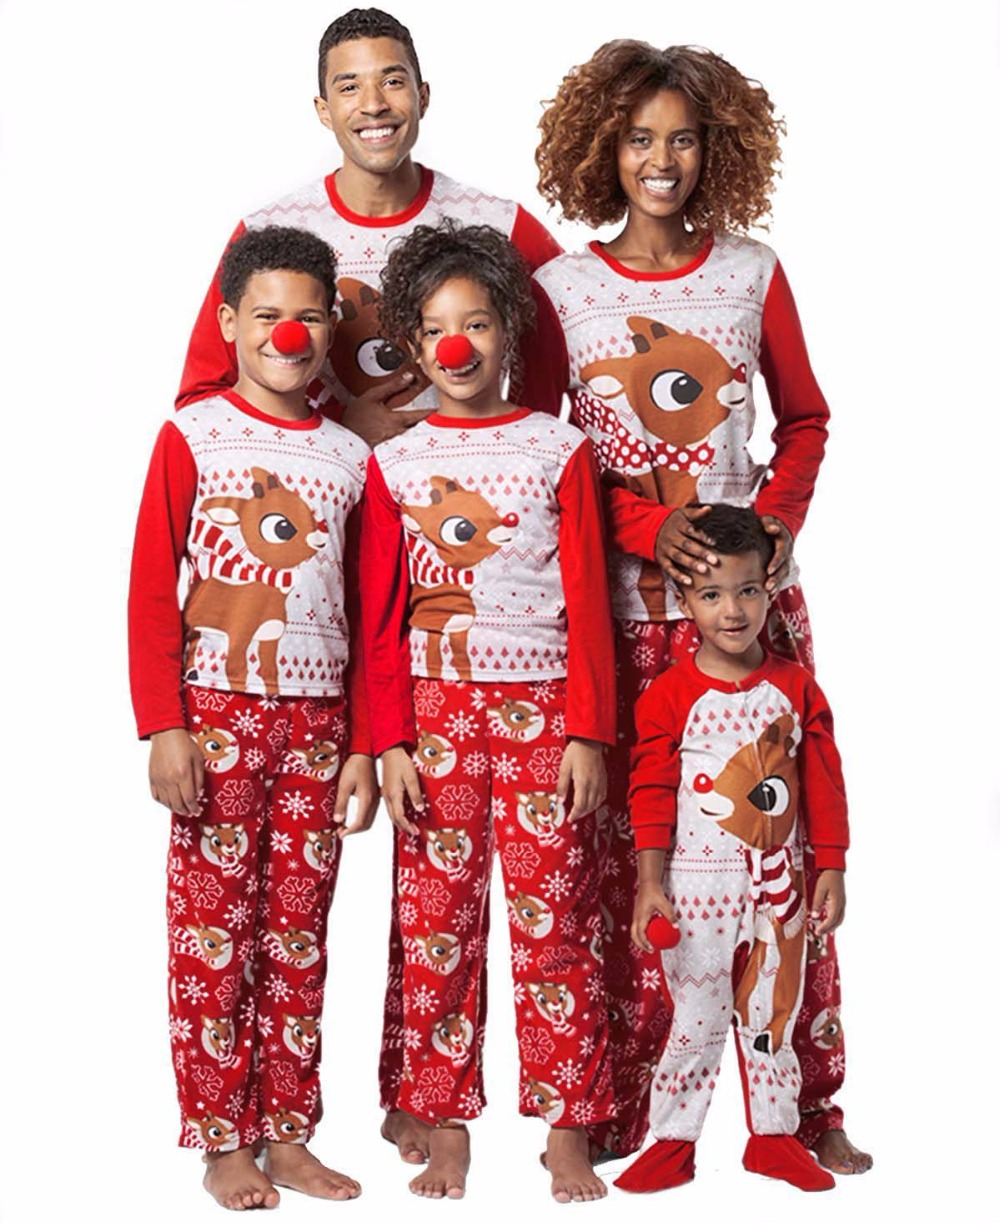 Christmas Family Pajamas Set  Fashion Adult Kids Pajamas Set Cotton Nightwear Sleepwear Red Pyjamas Family Matching Clothes